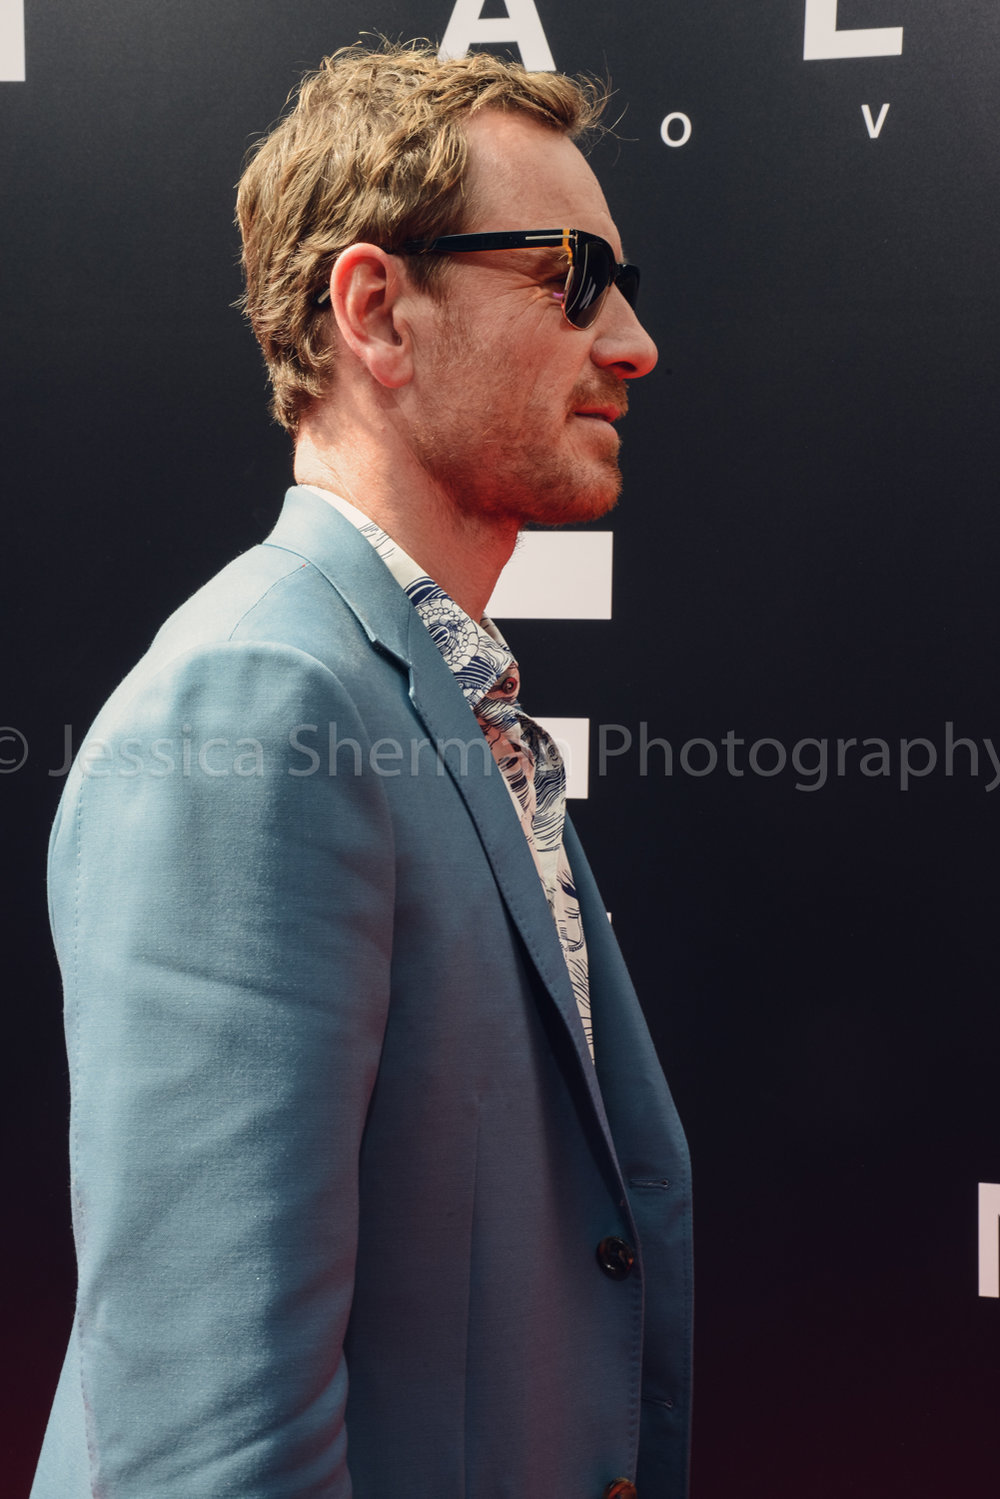 Fassbender_Profile-WEB (1 of 1).jpg